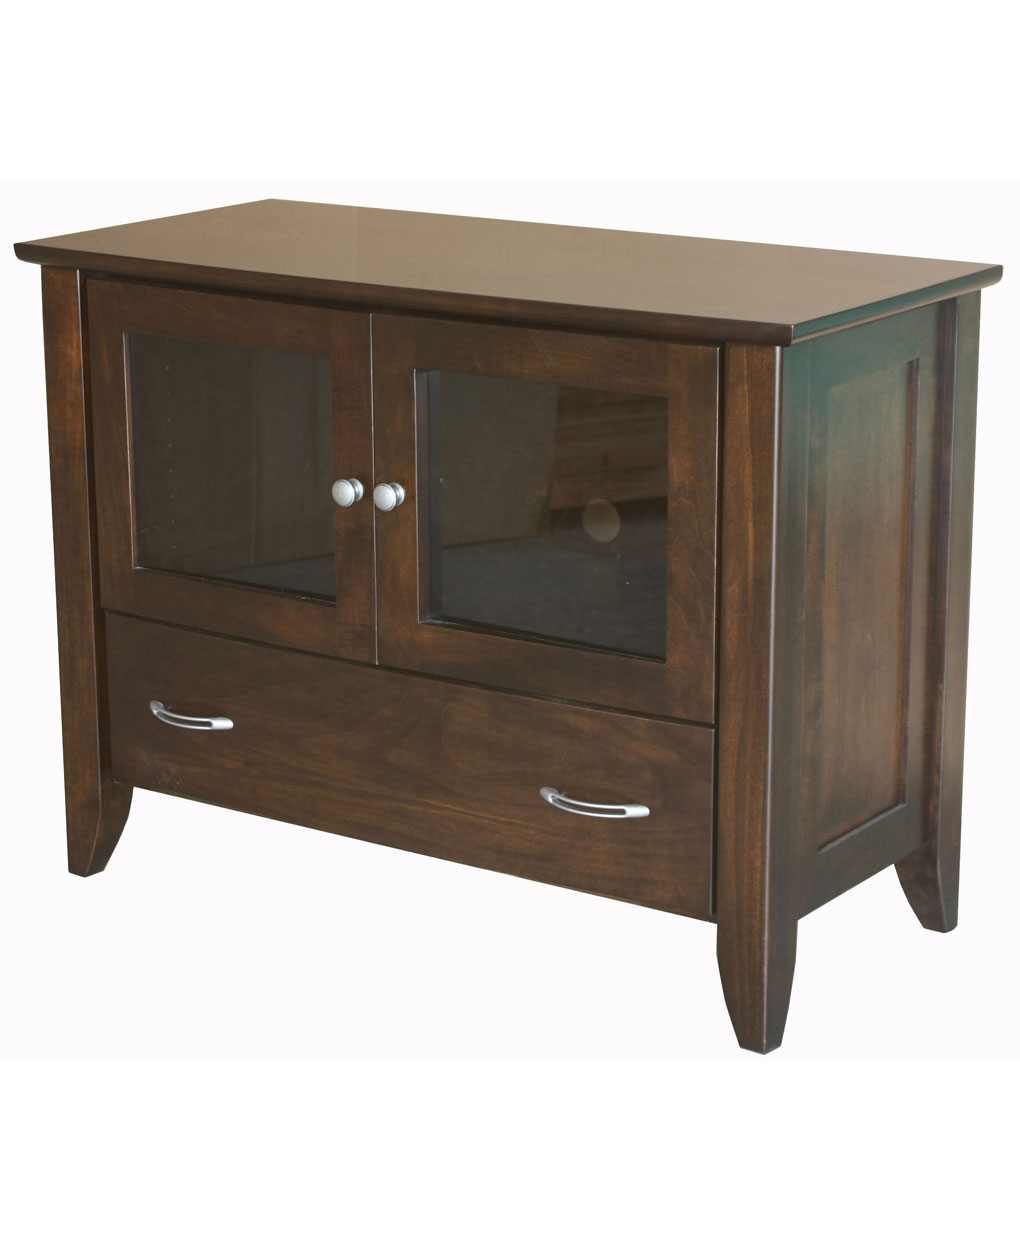 Jaymont Plasma Stand Amish Direct Furniture